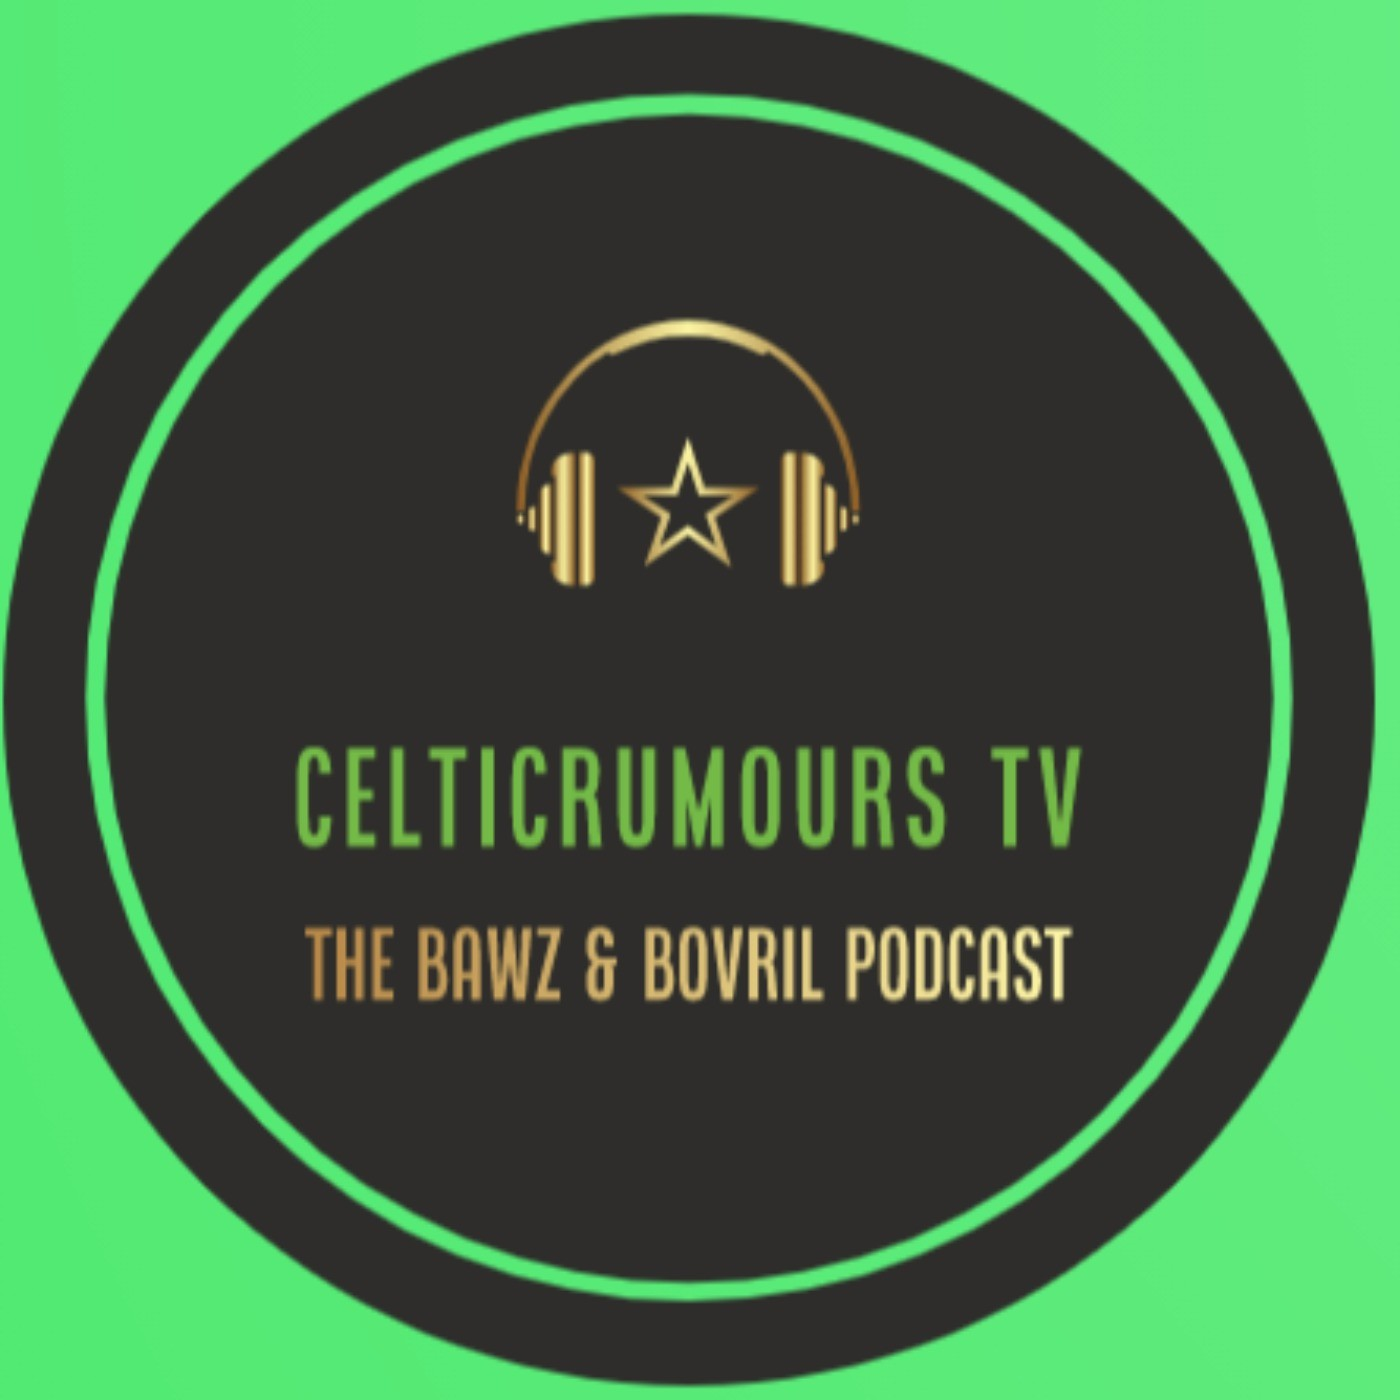 The Bawz and Bovril Podcast Episode #6